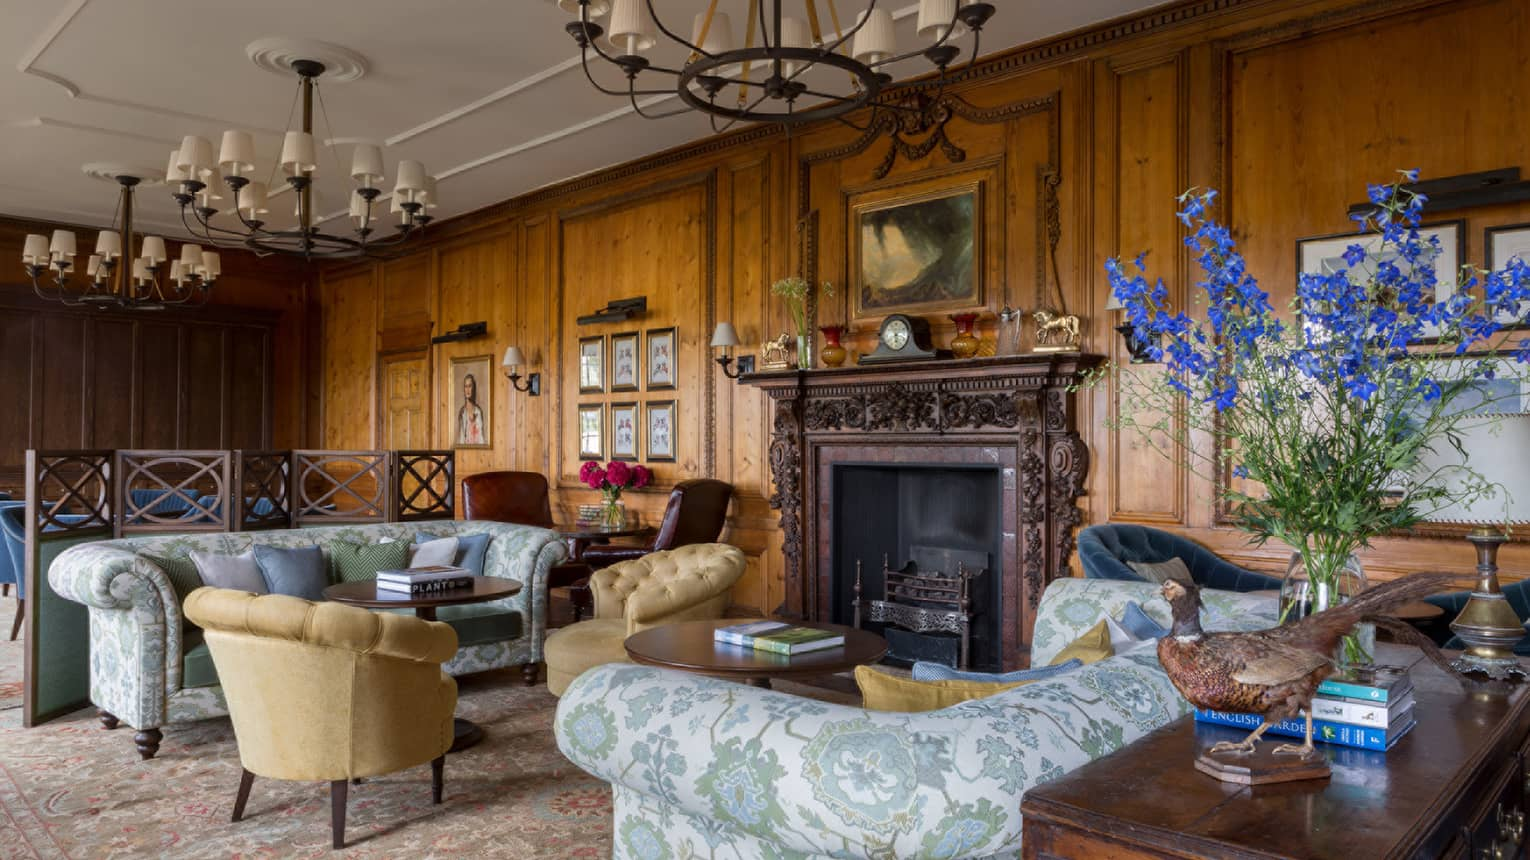 The Library, antique-style blue floral sofas, armchairs, rustic wood walls, soaring ceilings